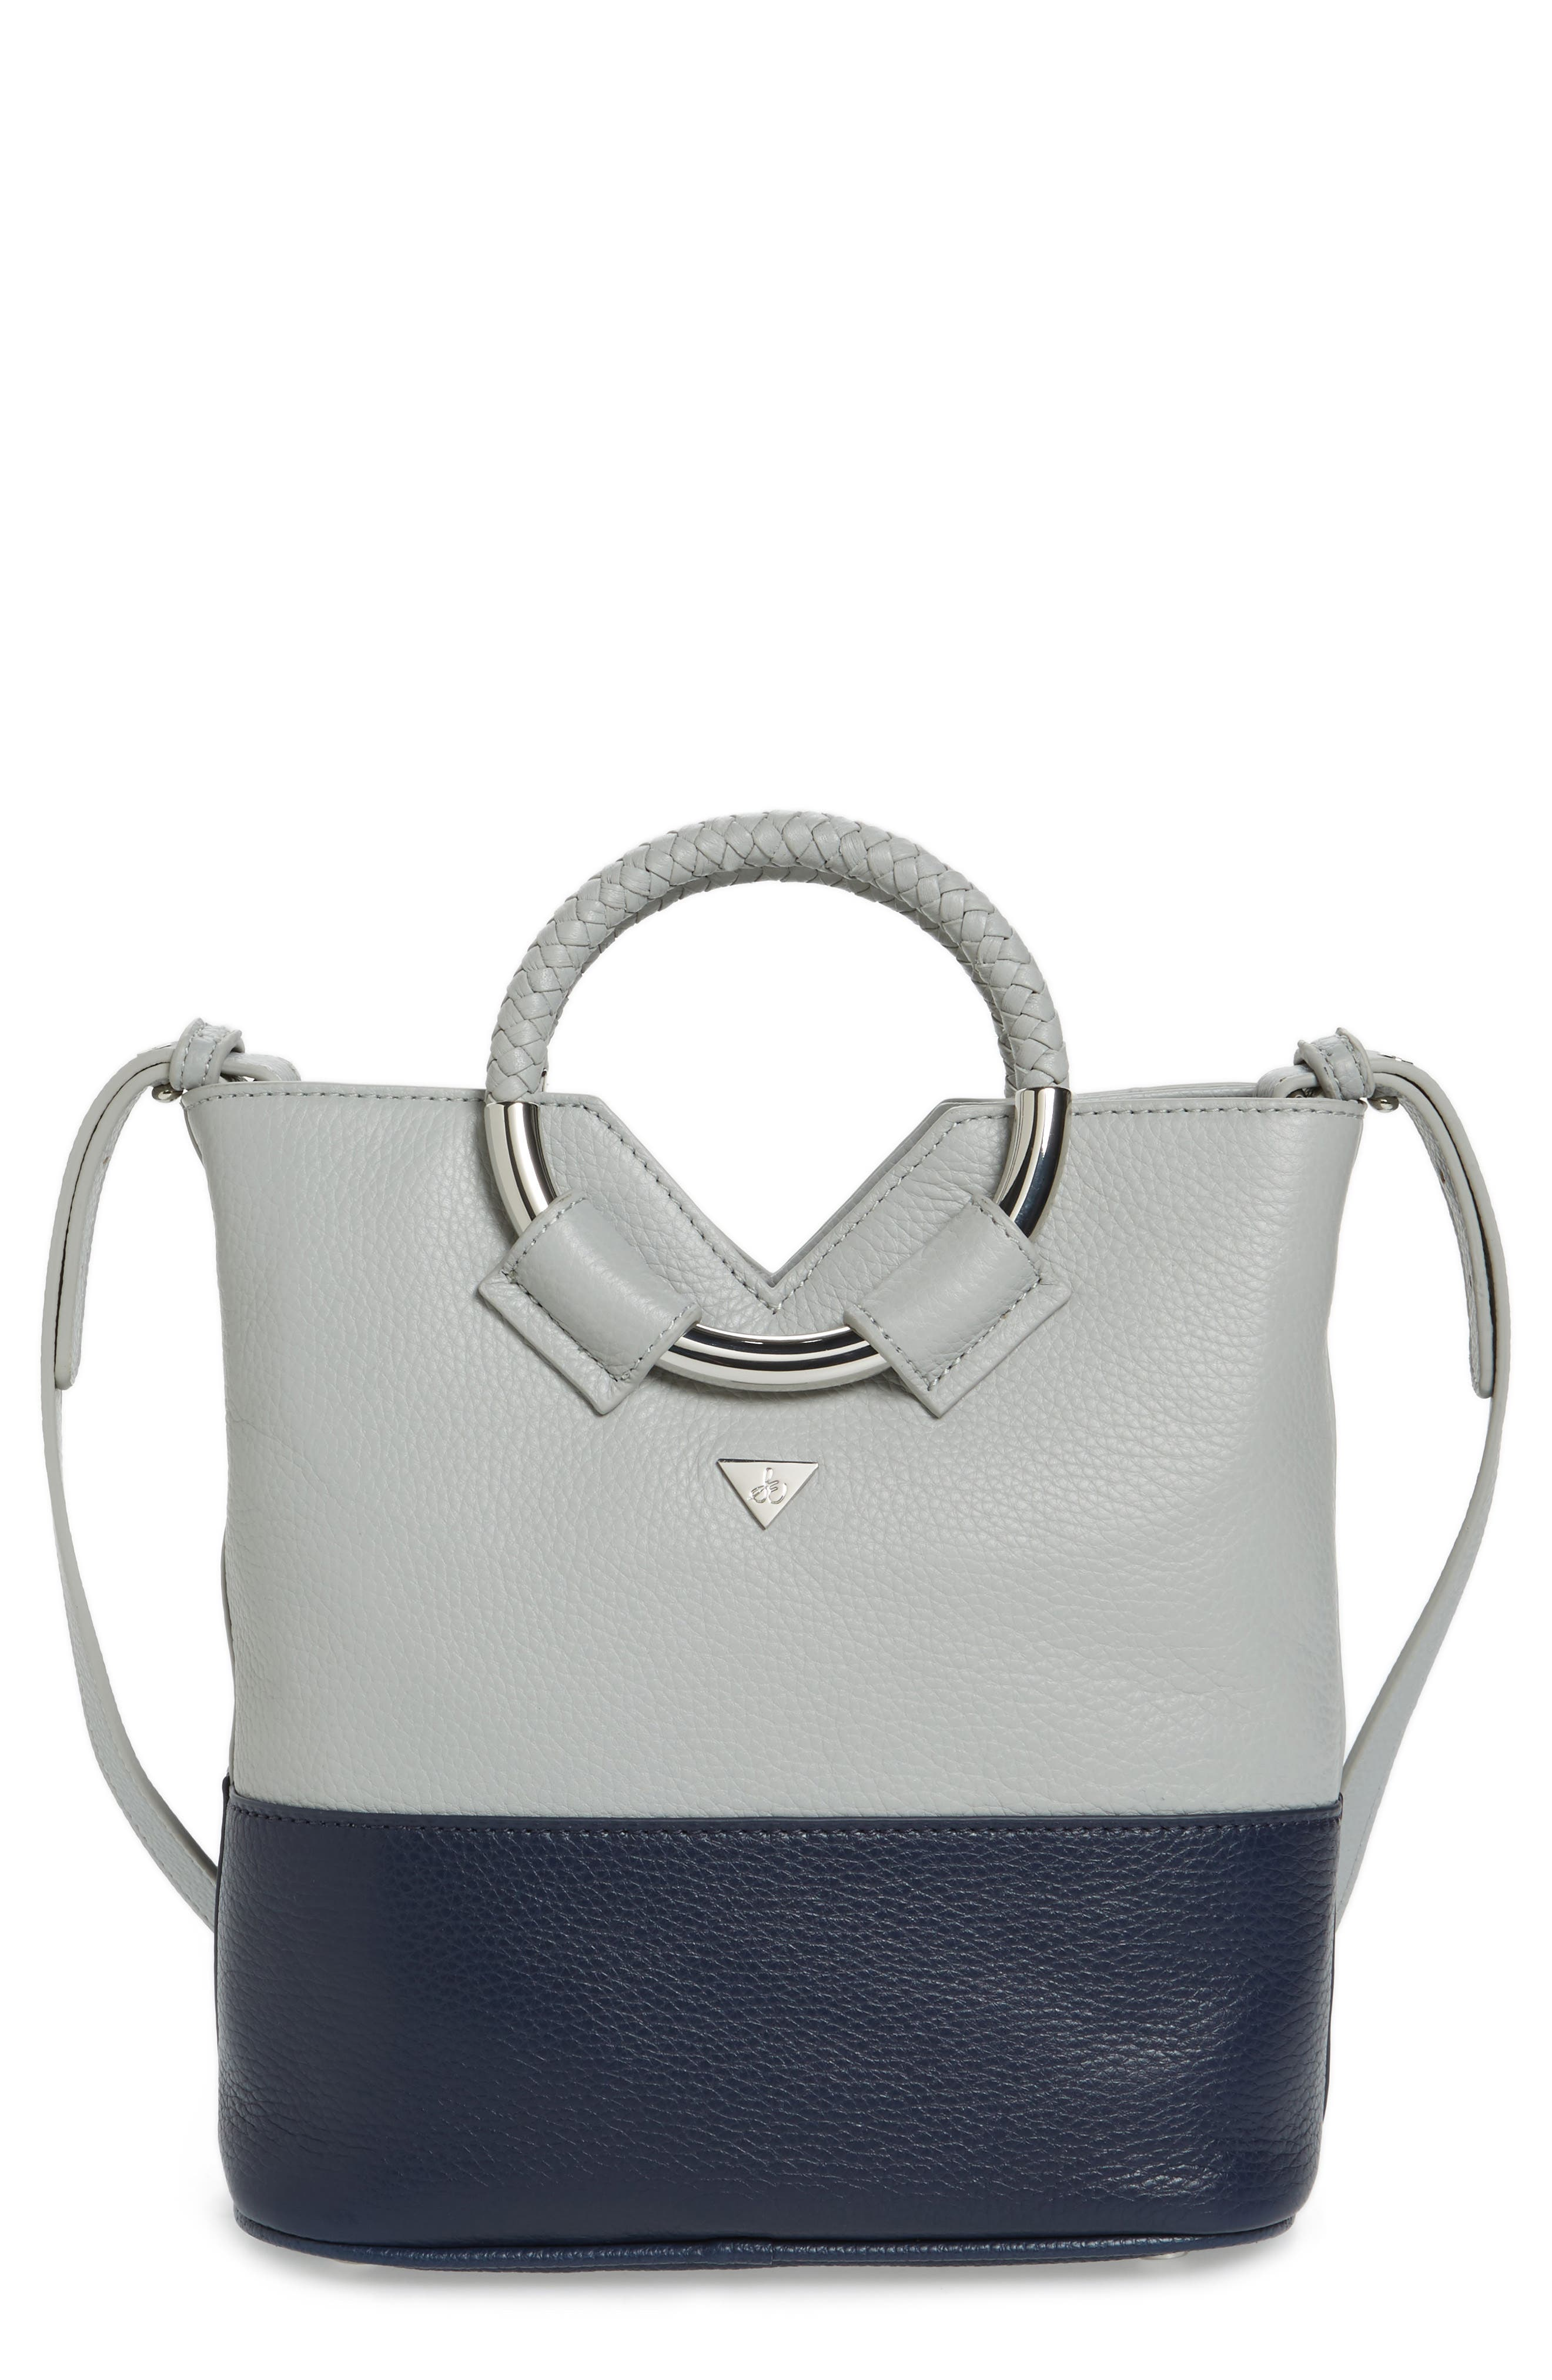 Alternate Image 1 Selected - Sam Edelman Small Elina Leather Crossbody Bag